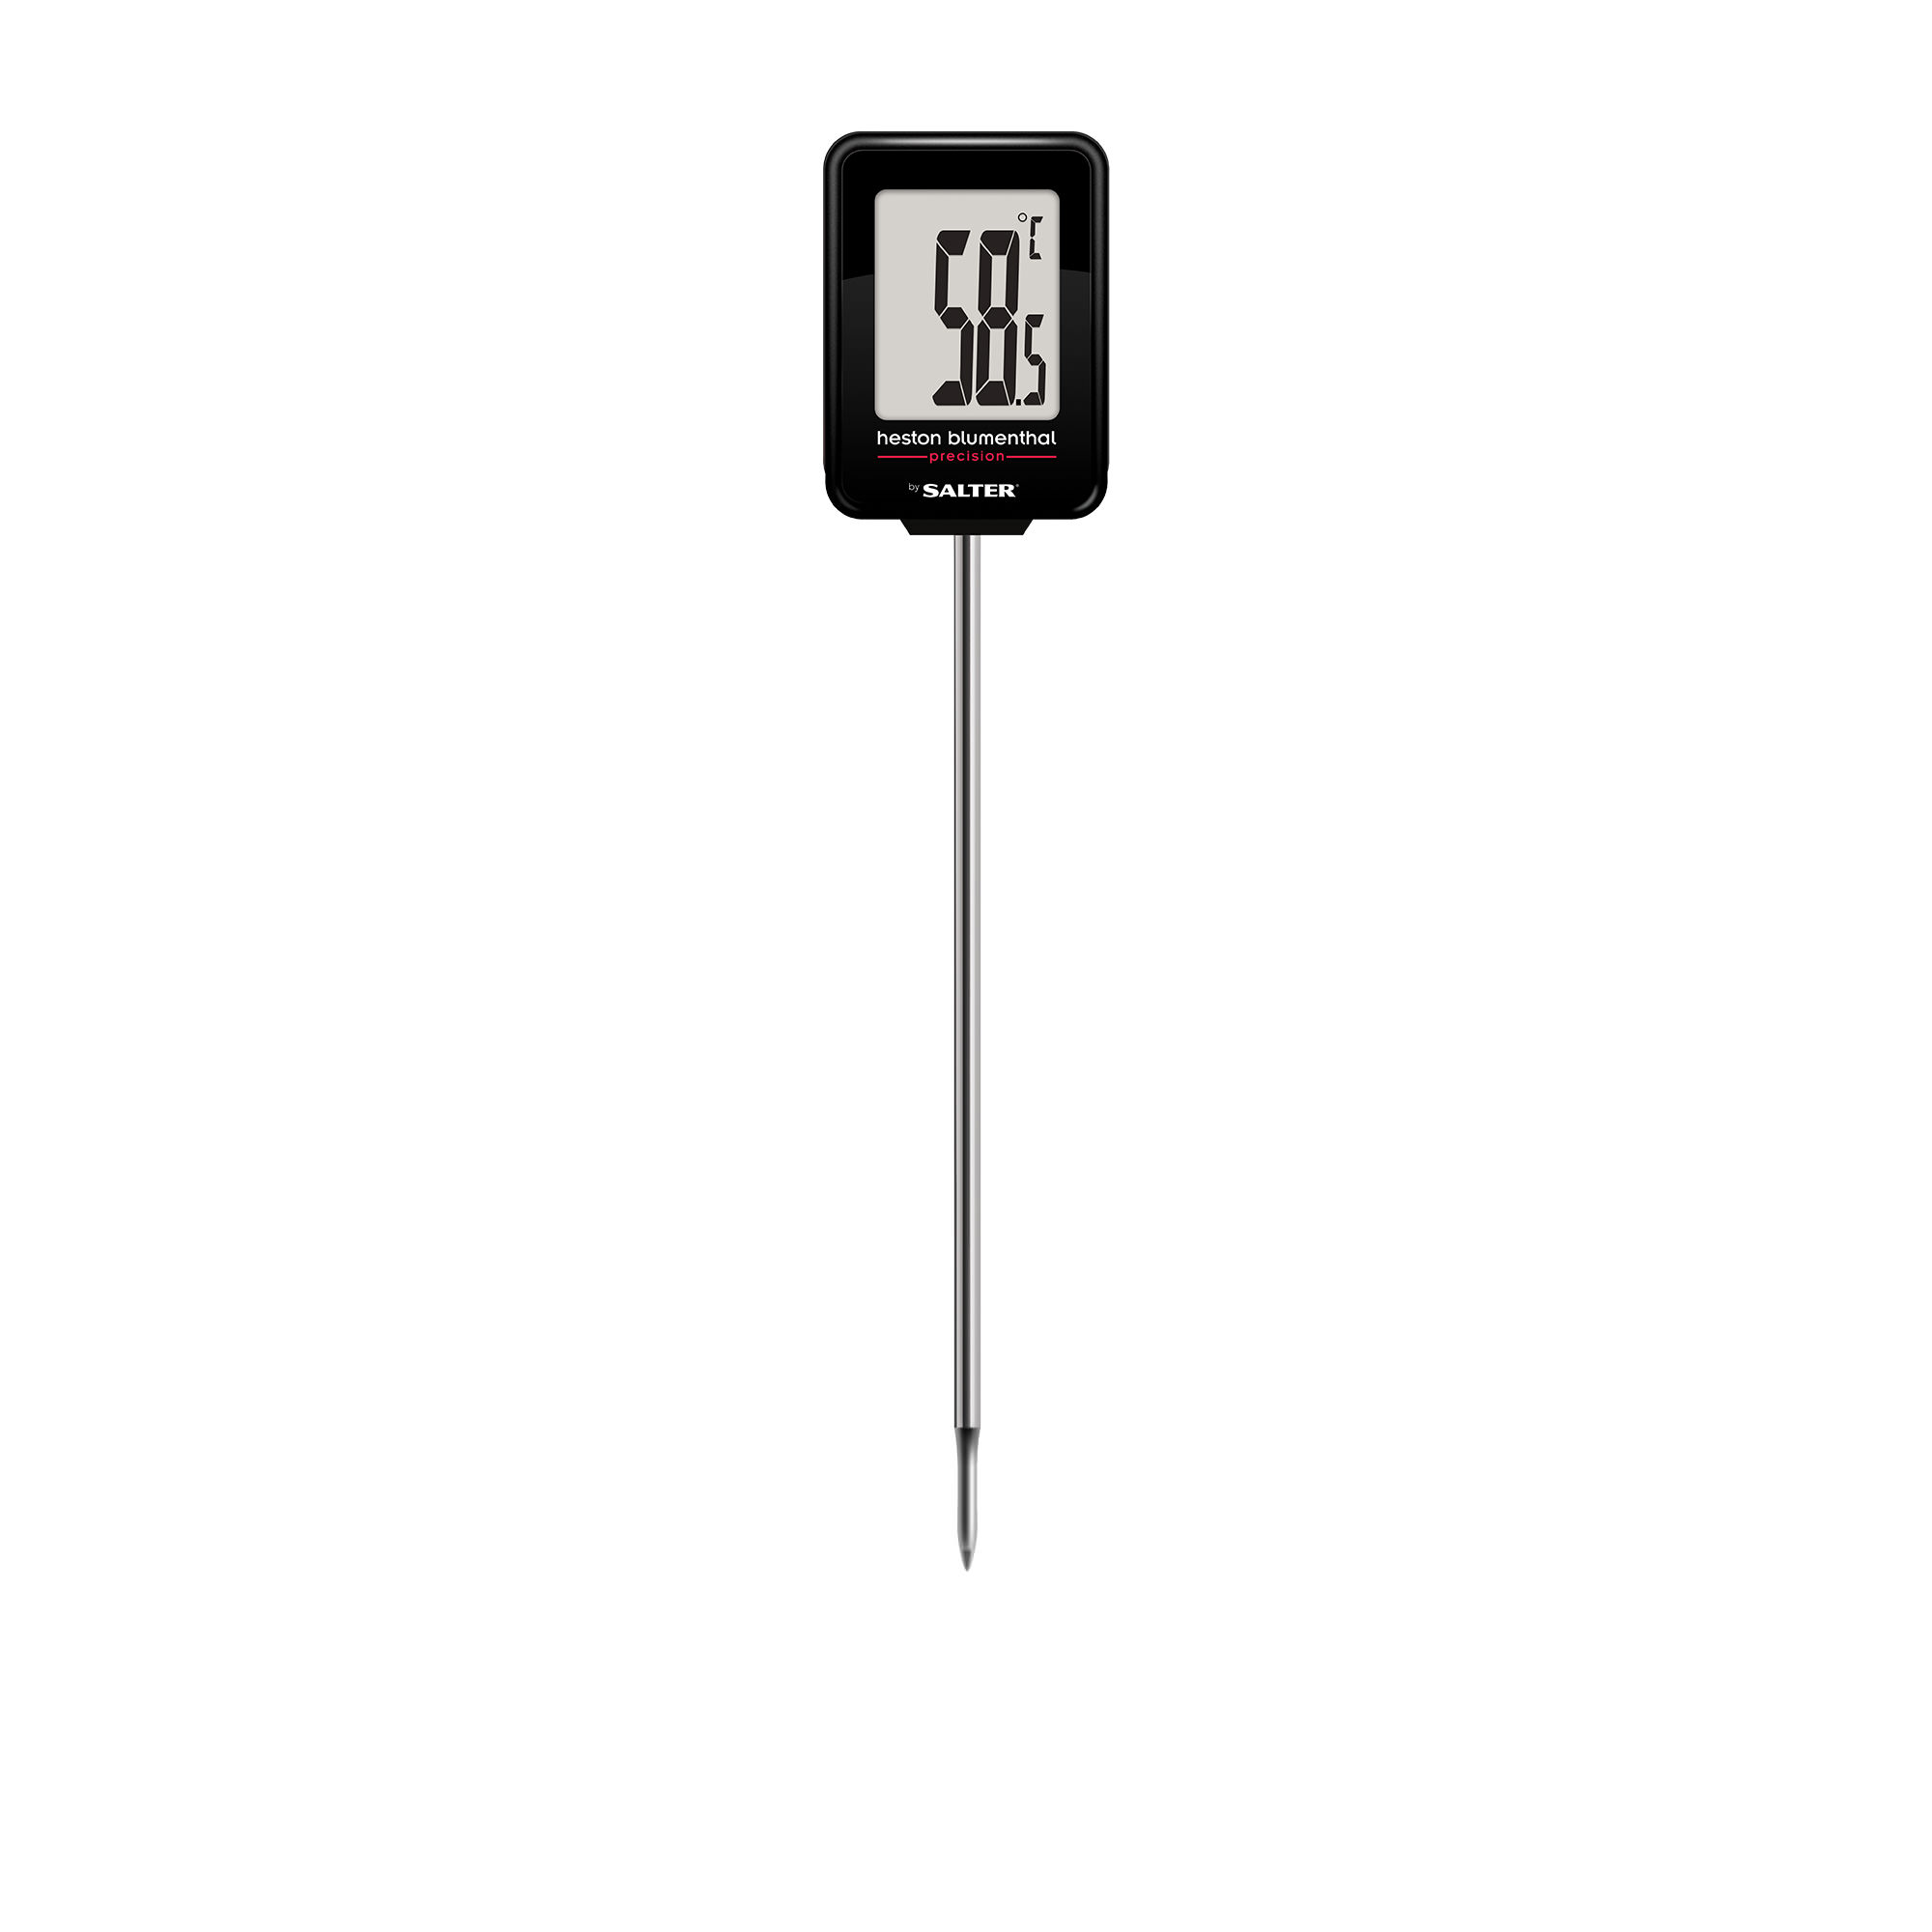 Heston Blumenthal Precision by Salter Digital Instant Read Thermometer Black